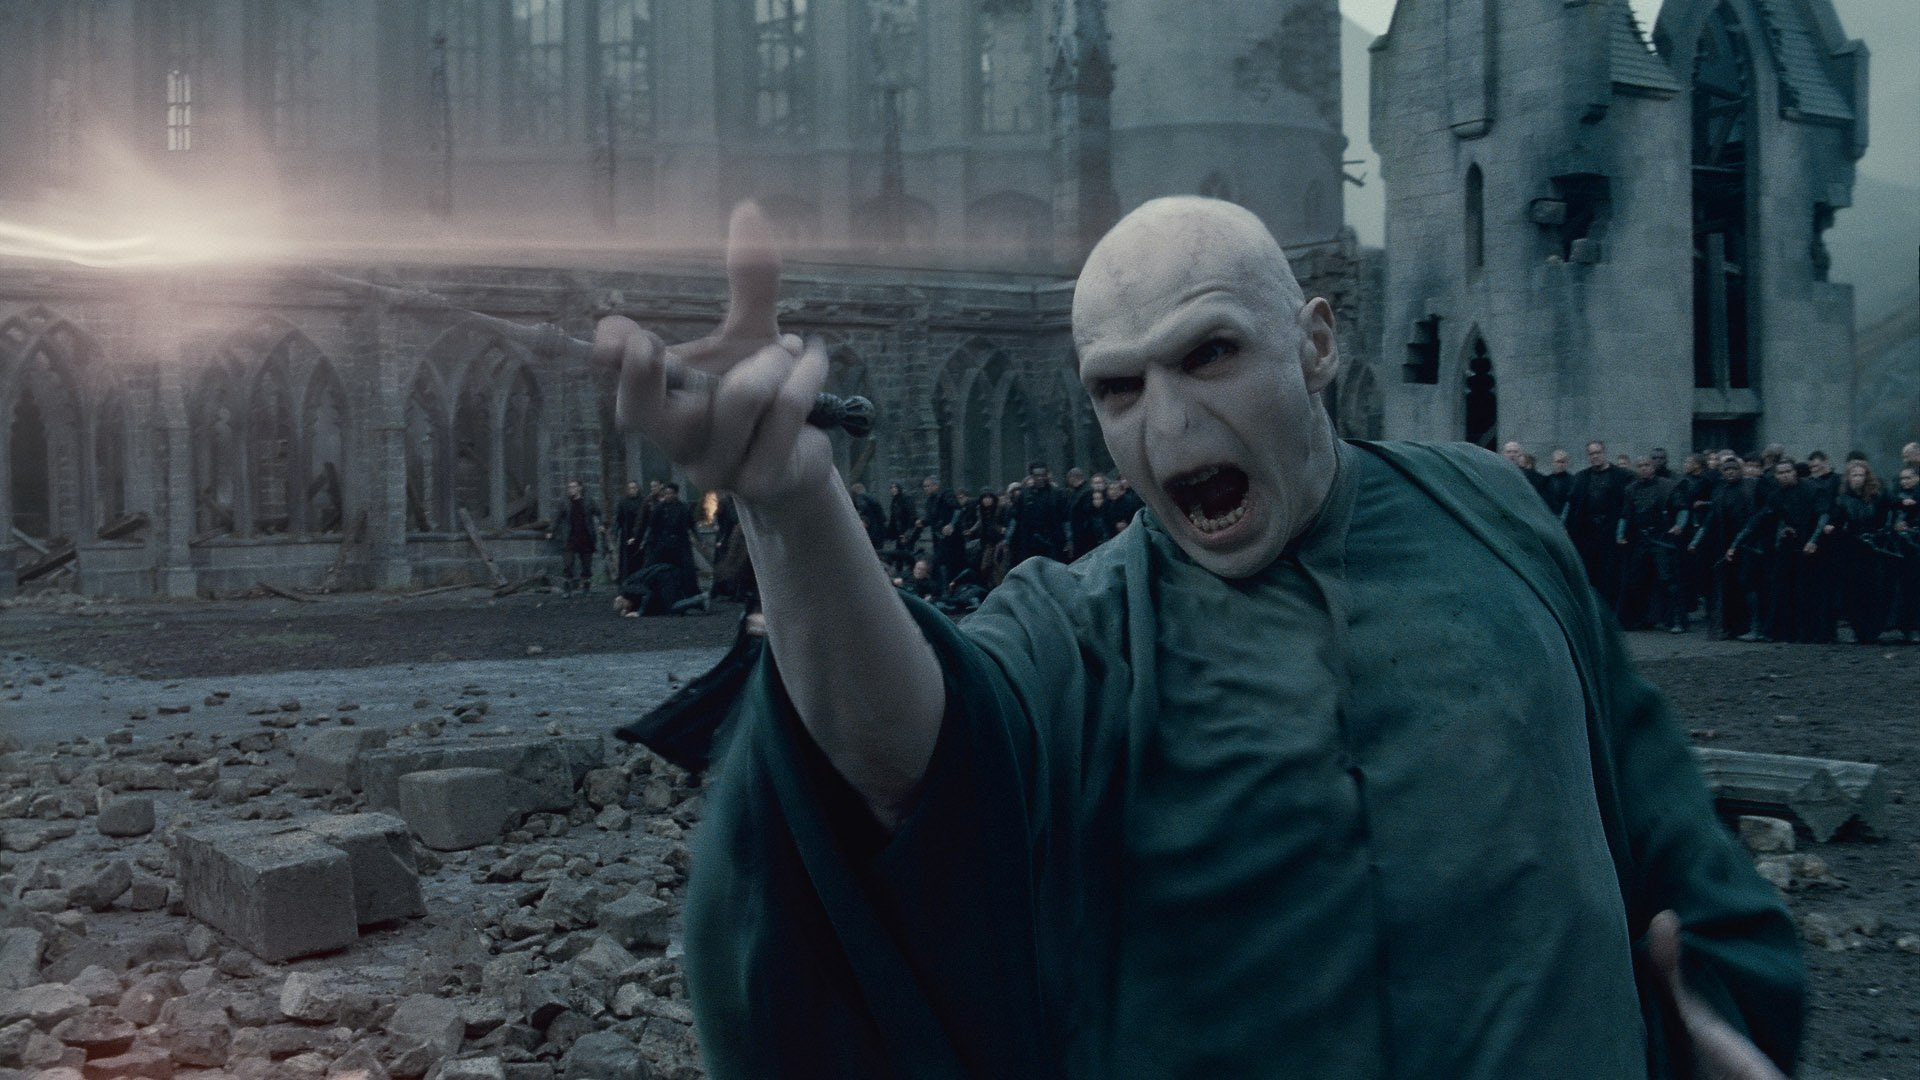 """Film: Harry Potter and the Deathly Hallows Part 2 (2011), Starring Ralph Fiennes as Lord Voldemort. In this film publicity image released by Warner Bros. Pictures, Ralph Fiennes portrays Lord Voldemort in a scene from """"Harry Potter and the Deathly Hallows: Part 2."""" (AP Photo/Warner Bros. Pictures)"""